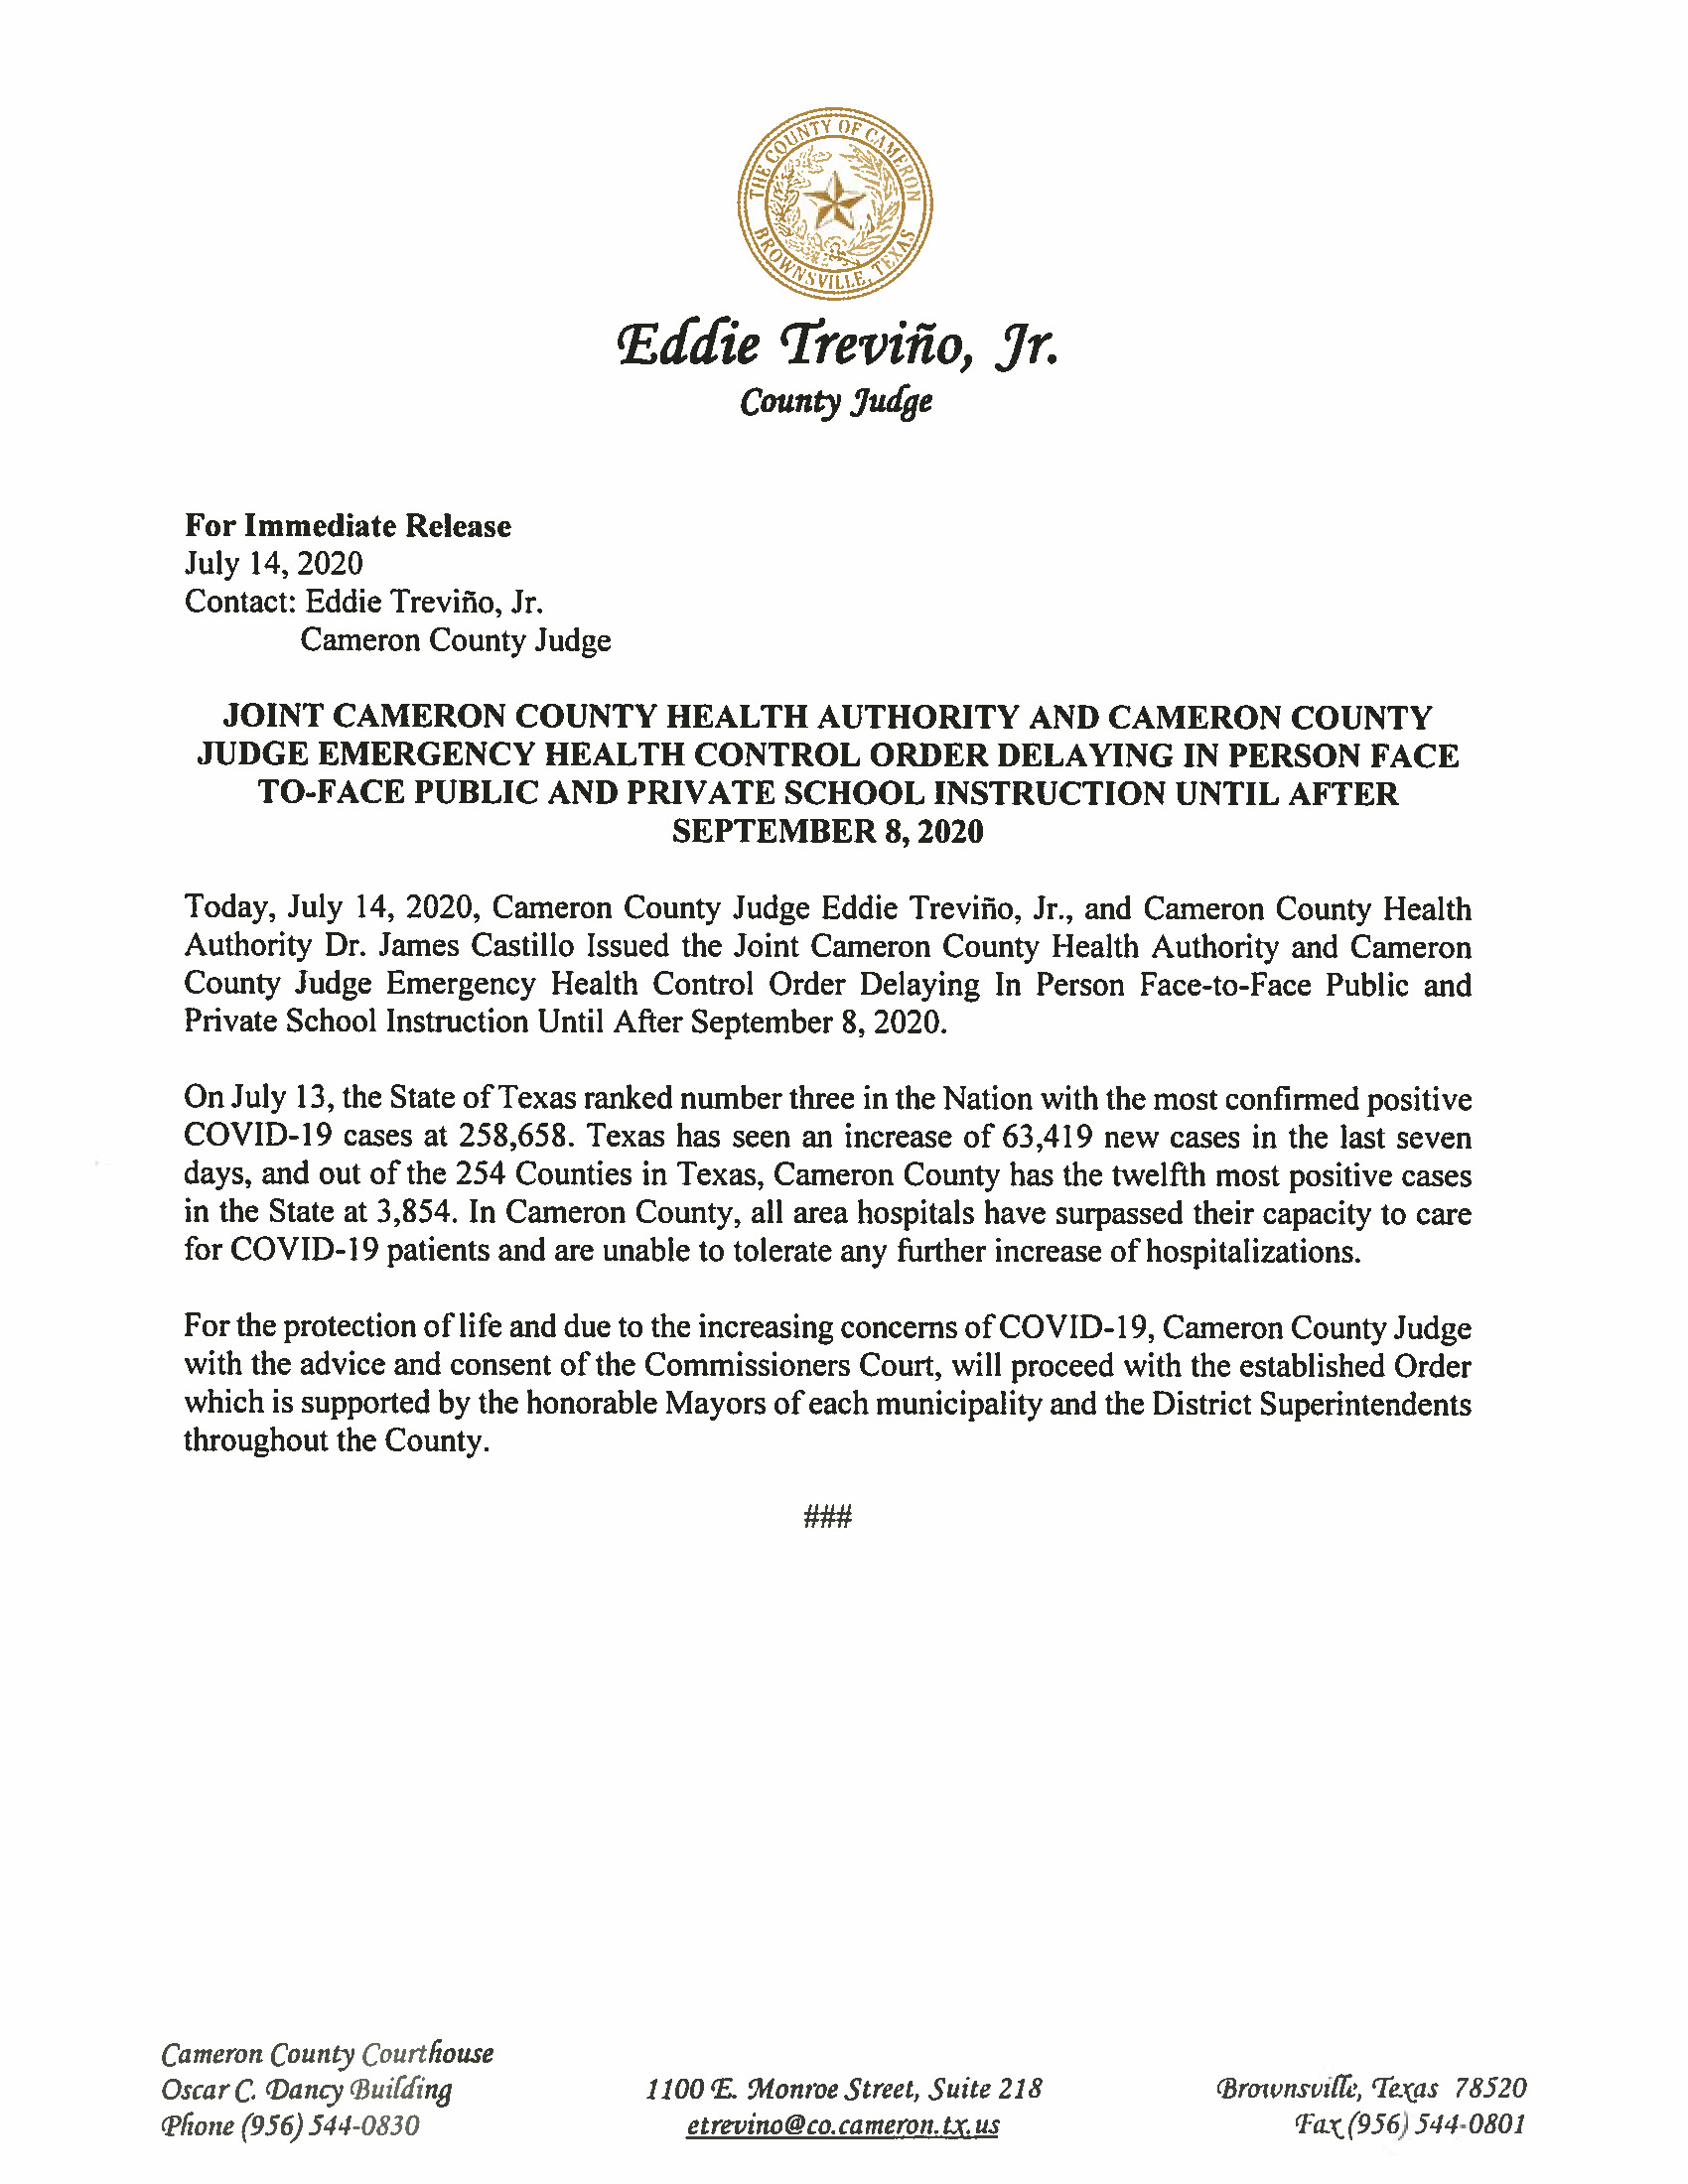 07.14.2020 Joint Cameron County Health Authority And Cameron County Judge Emergency Health Control Order